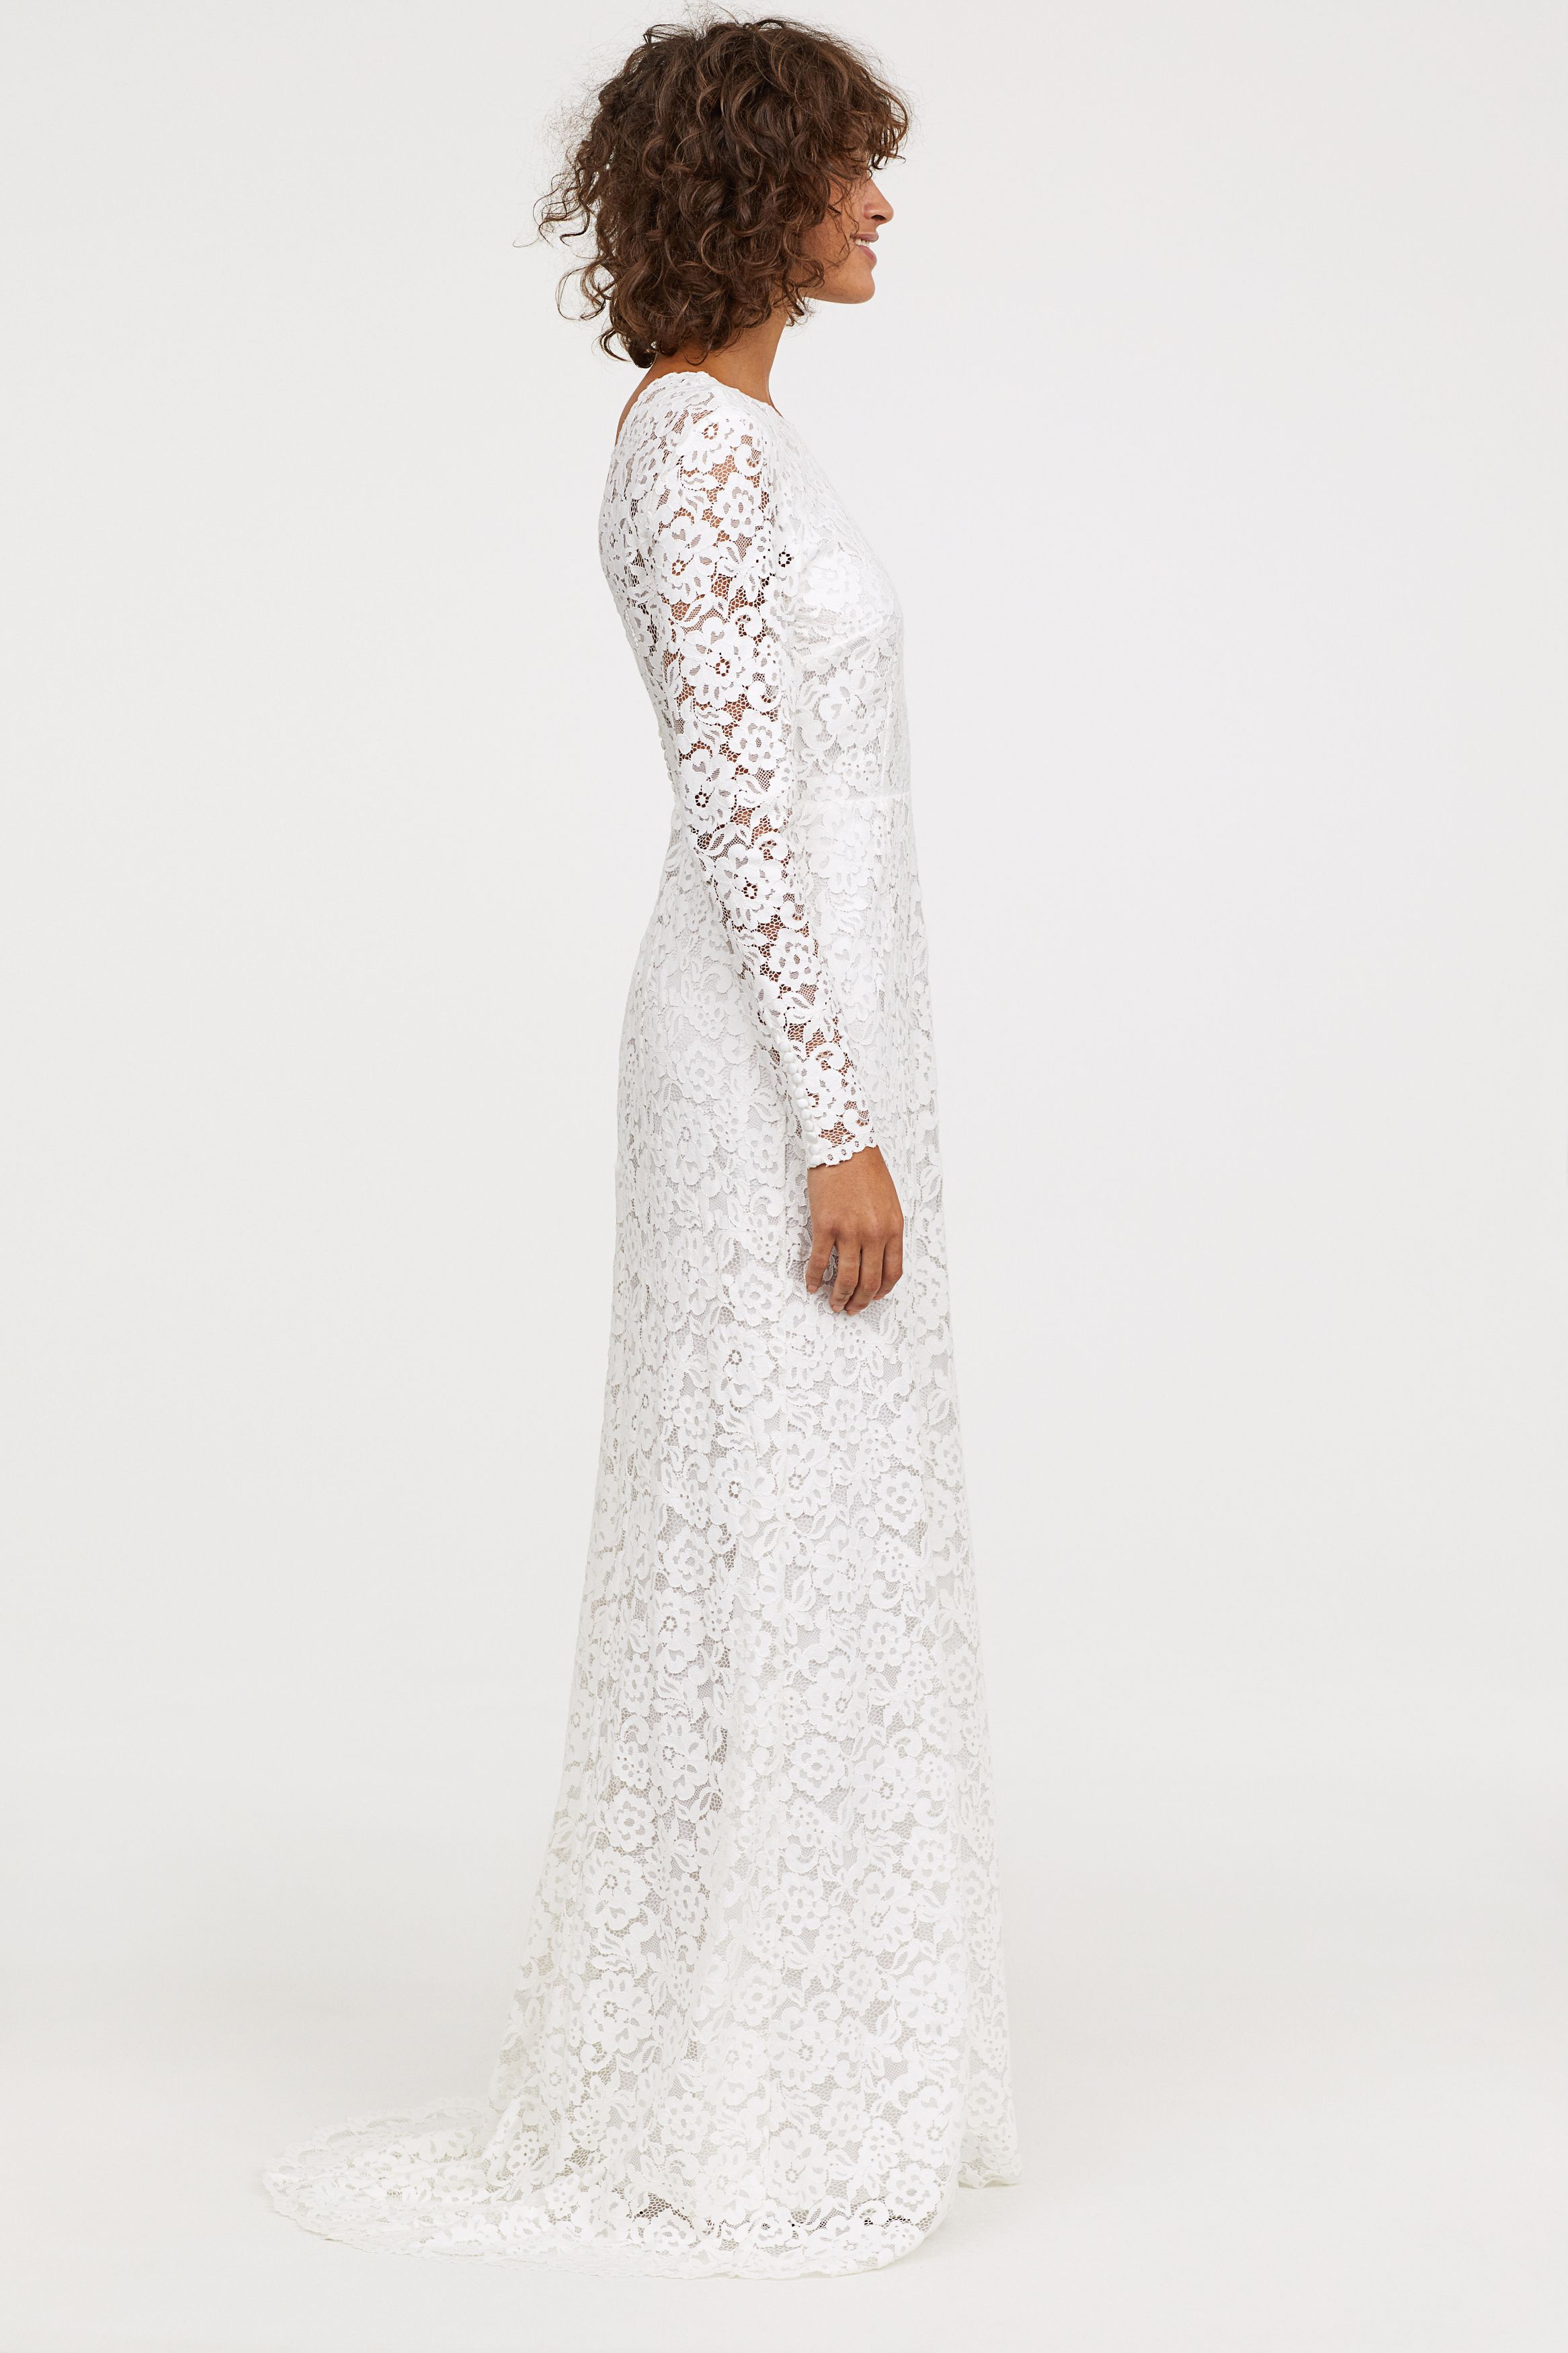 Hm Wedding Dress.From I Do To Beautiful Wedding Dresses Laces And Flowy Materials